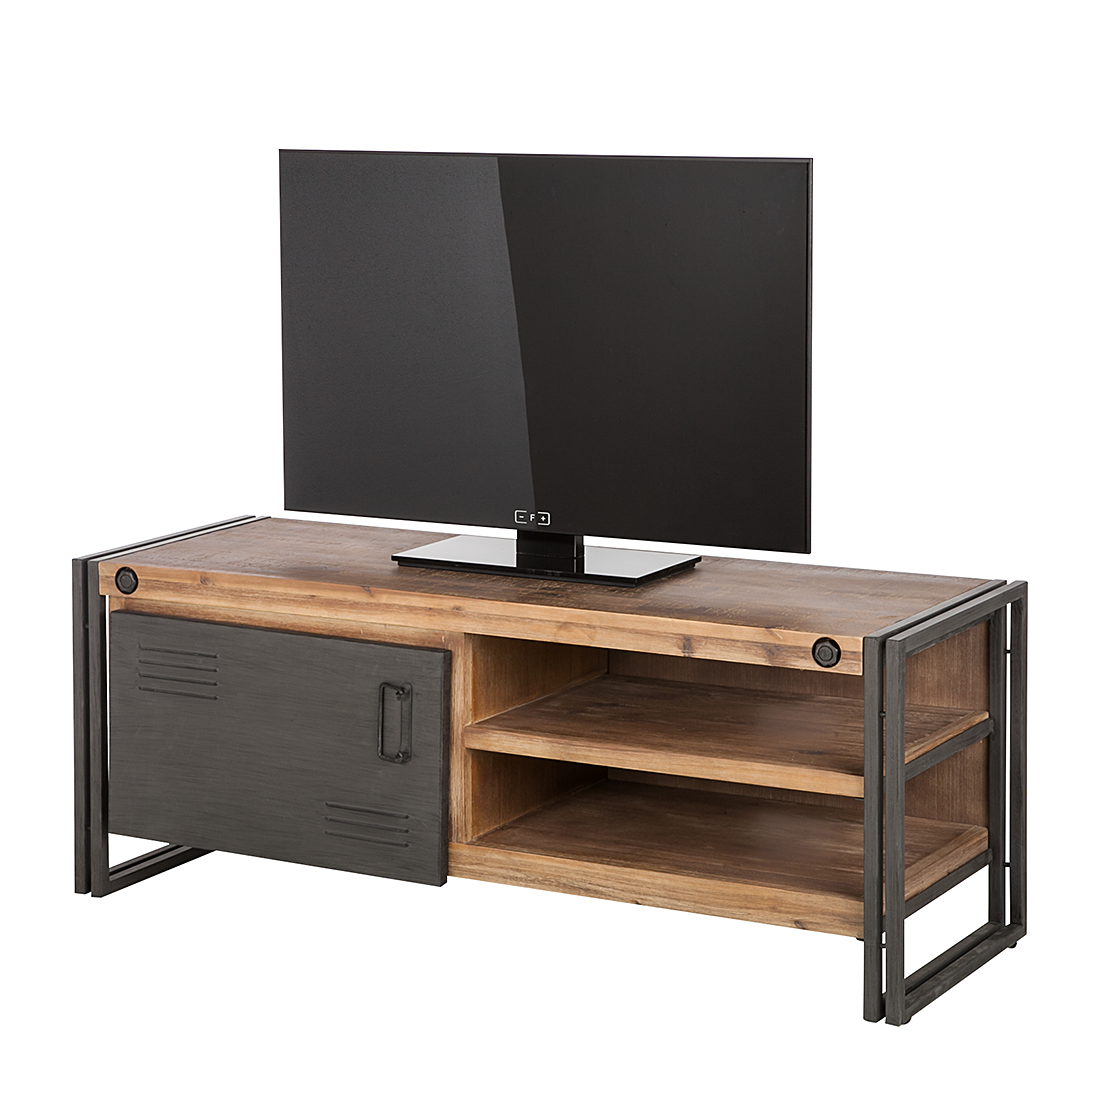 lowboard industrial akazie massivholz tv unterschrank tisch fernsehtisch neu. Black Bedroom Furniture Sets. Home Design Ideas